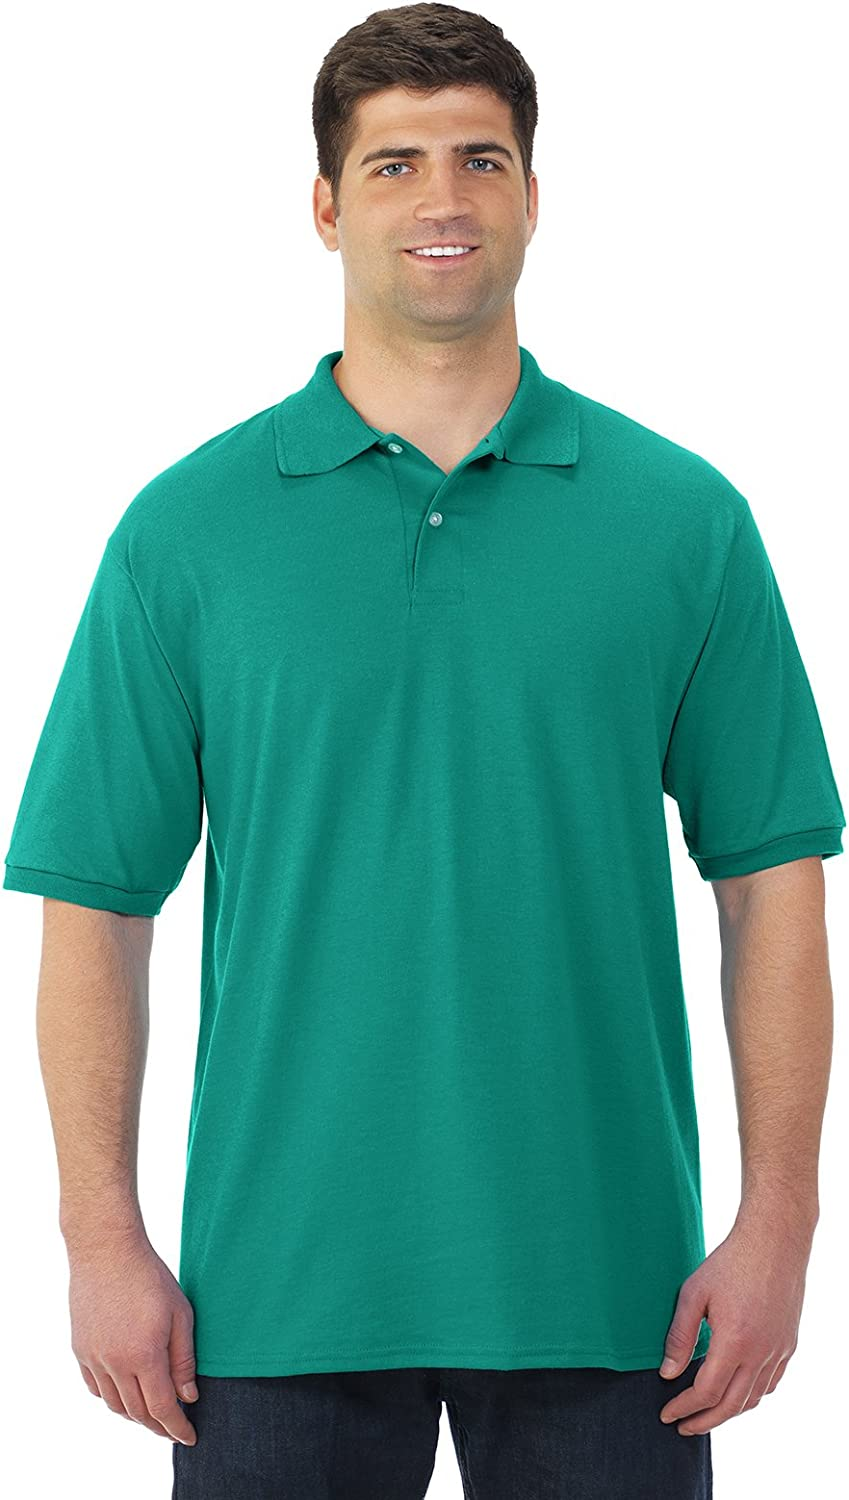 Jerzees 437M Adult 50-50 Cotton and Polyester Sport Shirt44; Kelly44; Small